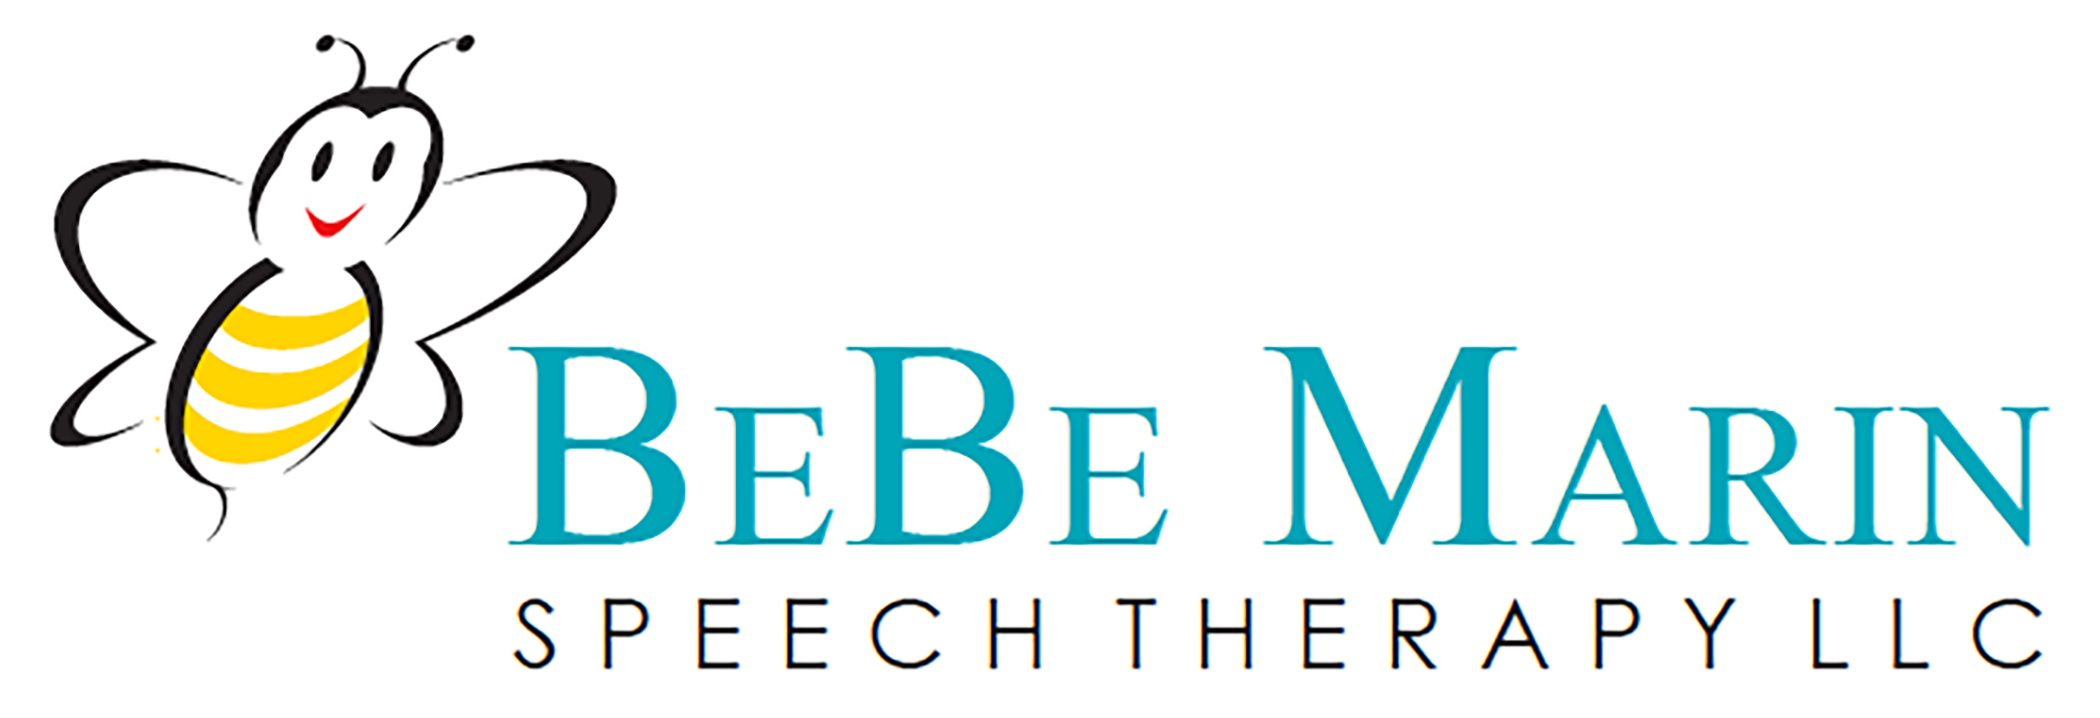 New Technologies, Your Child And You | BEBE MARIN SPEECH THERAPY LLC ...